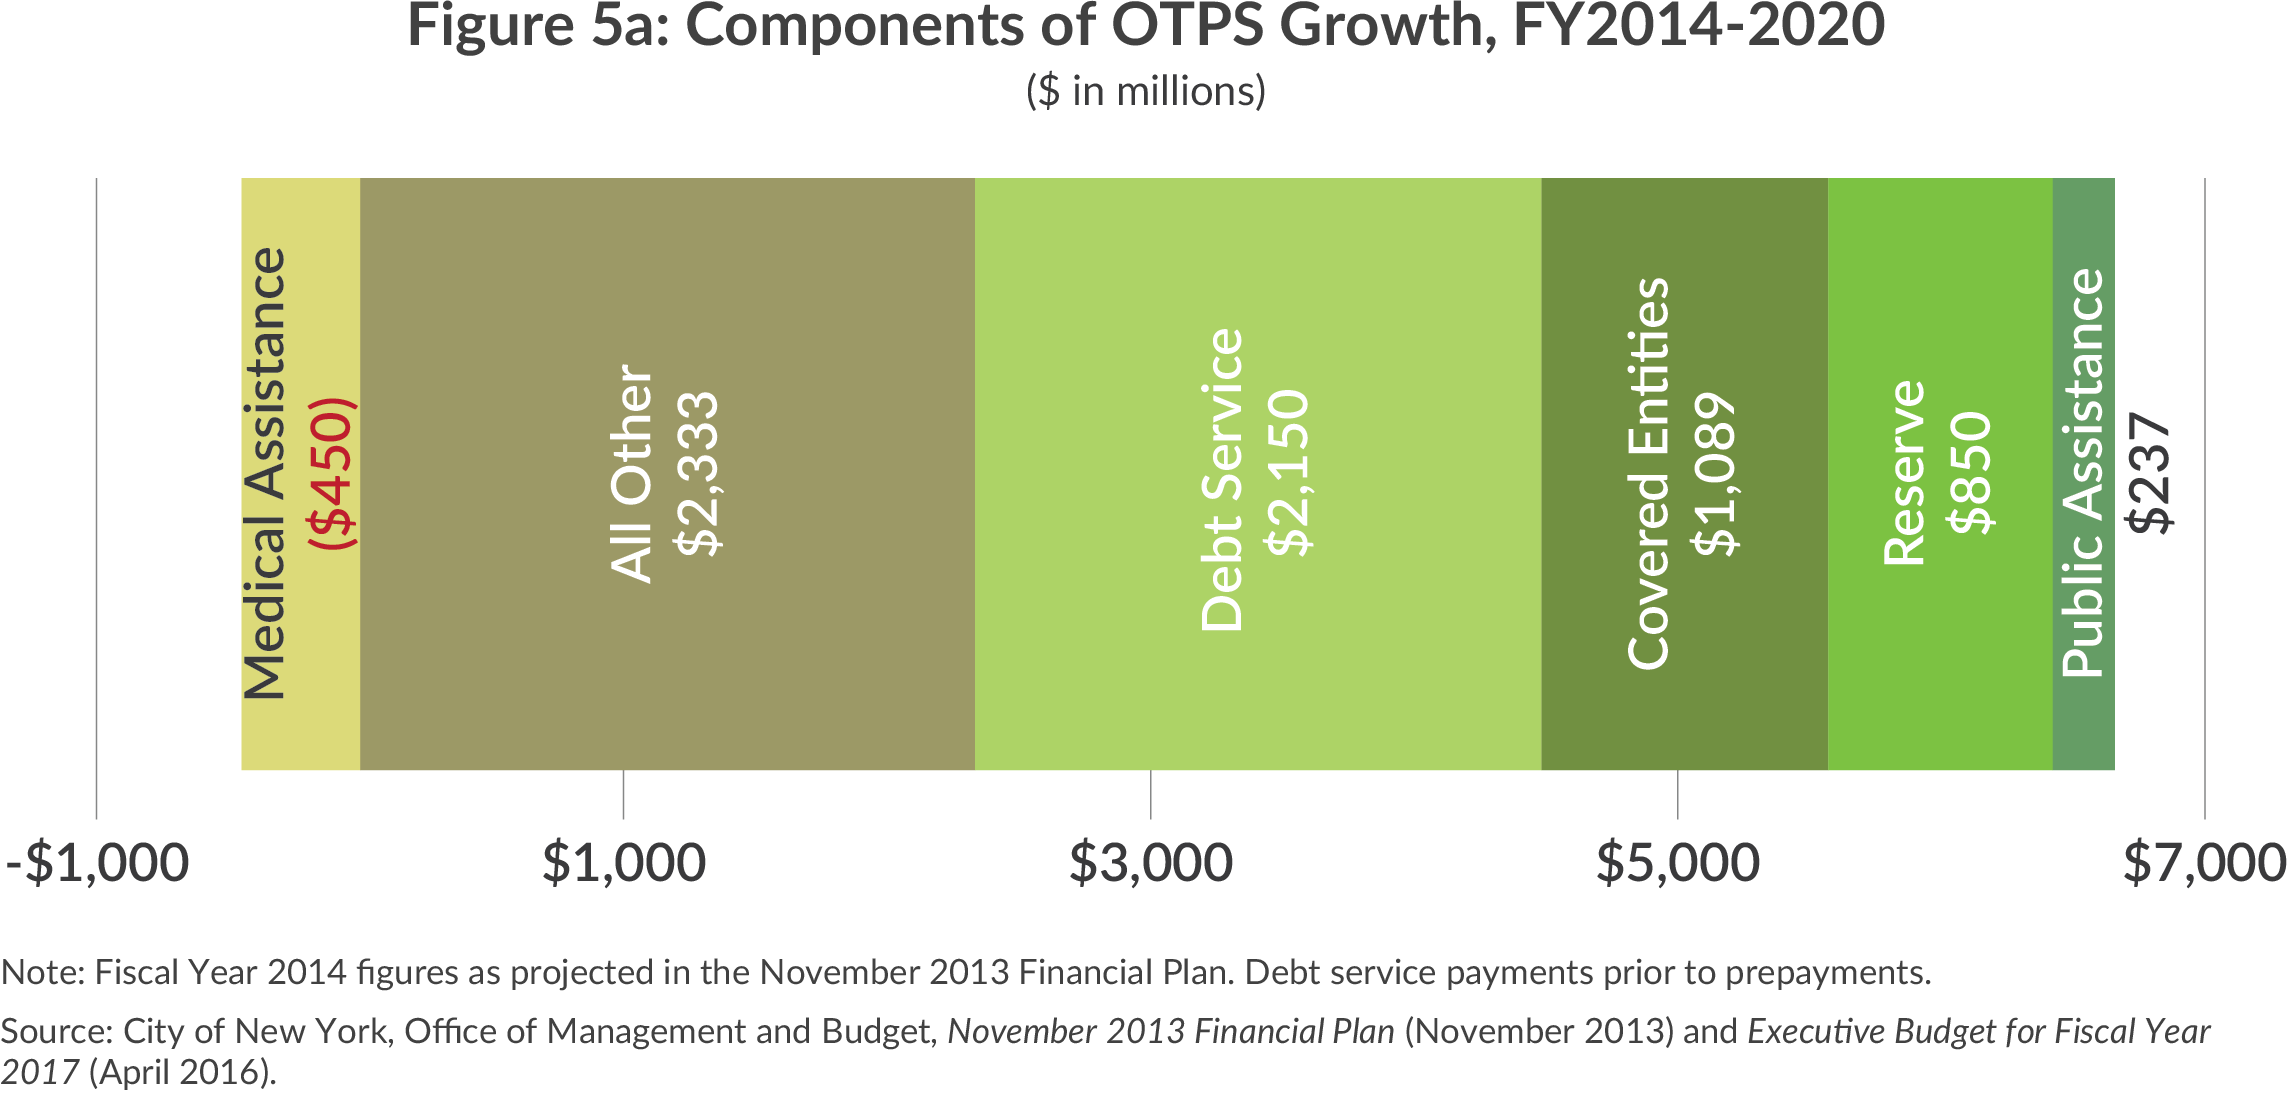 Other than personal services expenditure growth, NYC budget